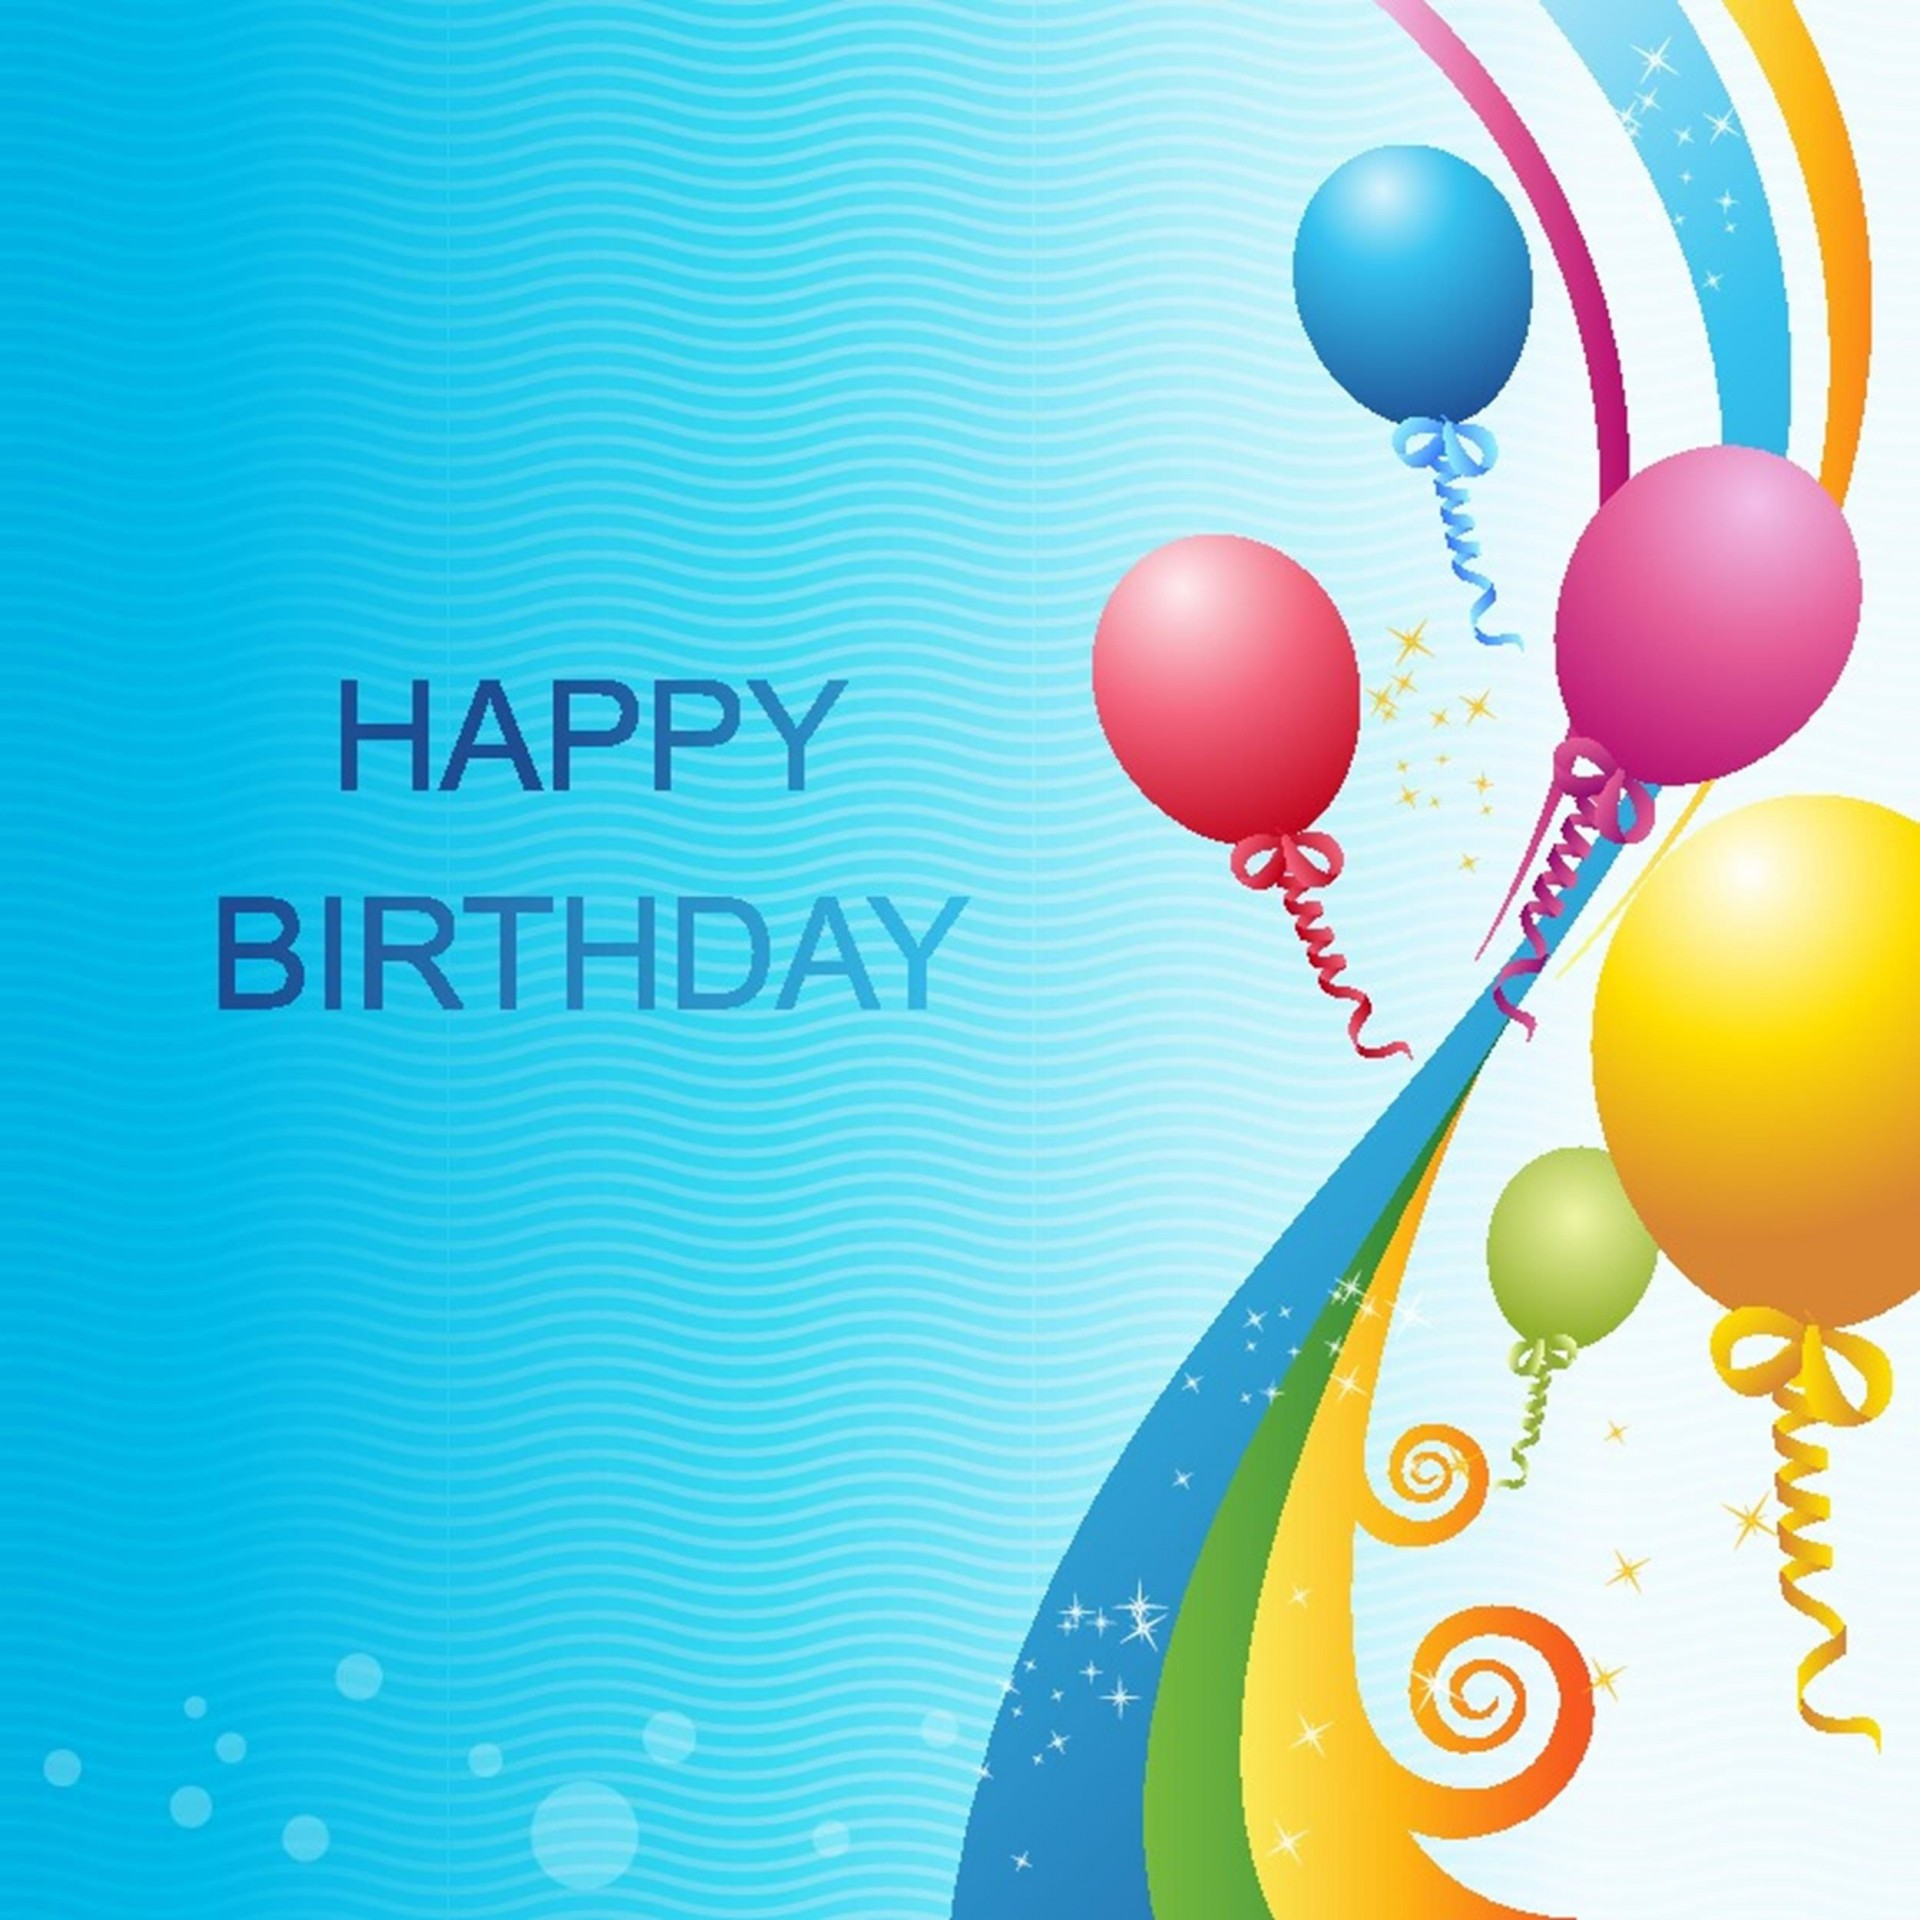 008 Simple Happy Birthday Card Template For Word Design 1920